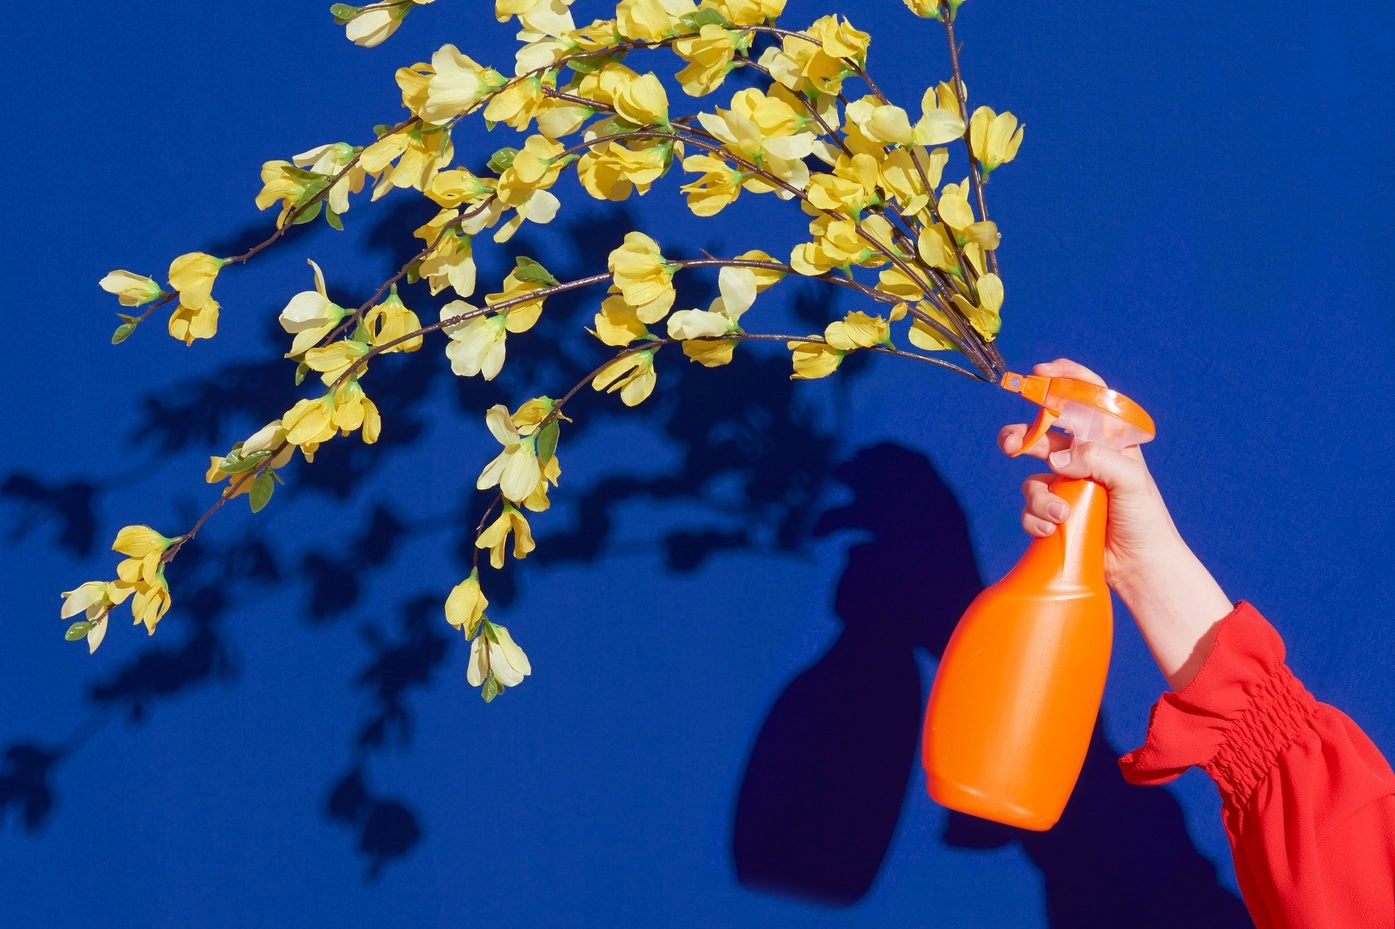 spray bottle with flowers coming out